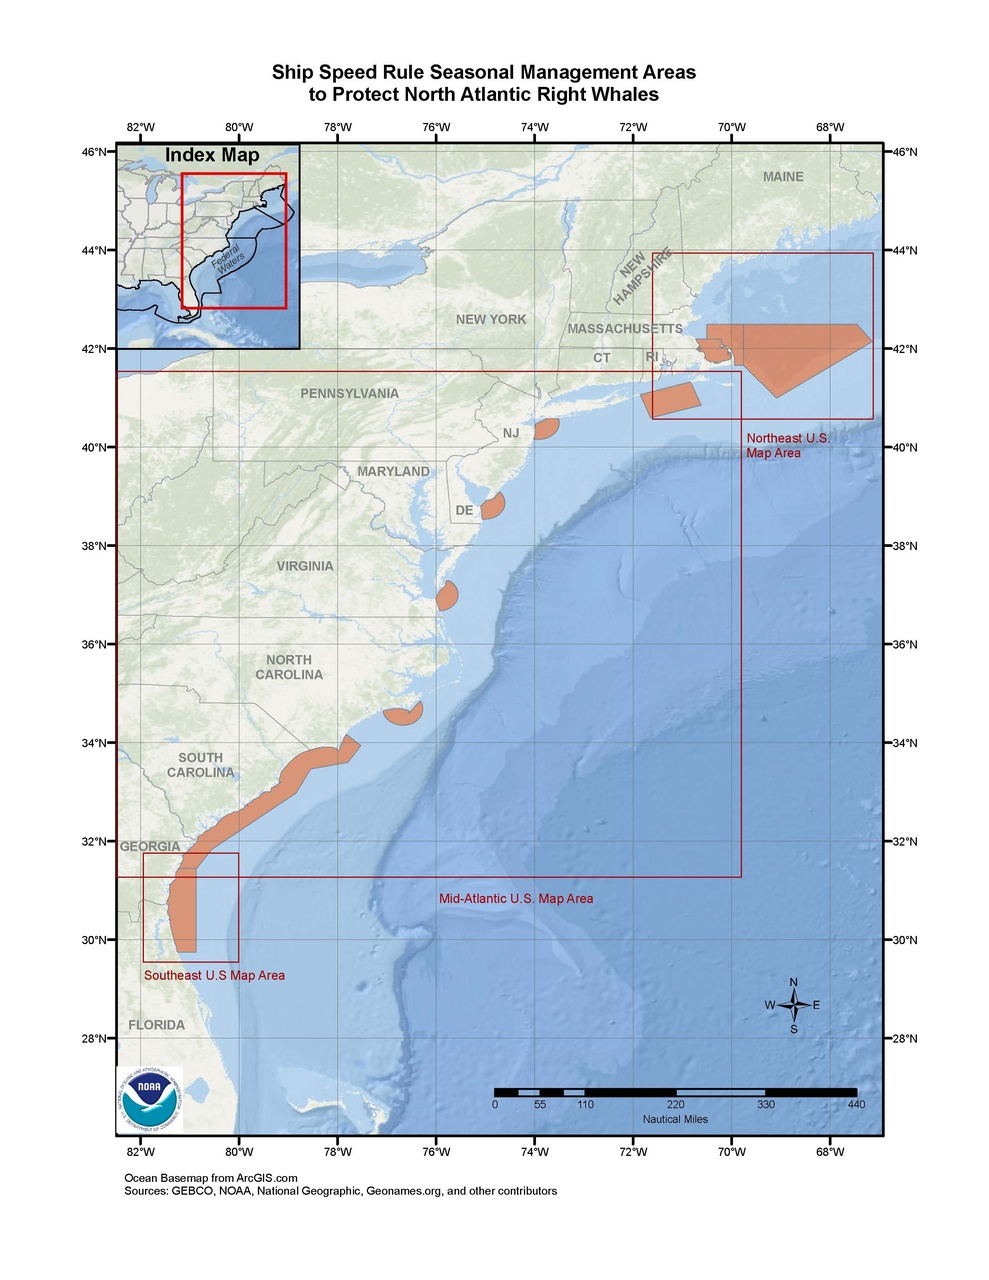 This is a map showing North Atlantic right whale seasonal management areas in the Greater Atlantic and and Southeast Regions.